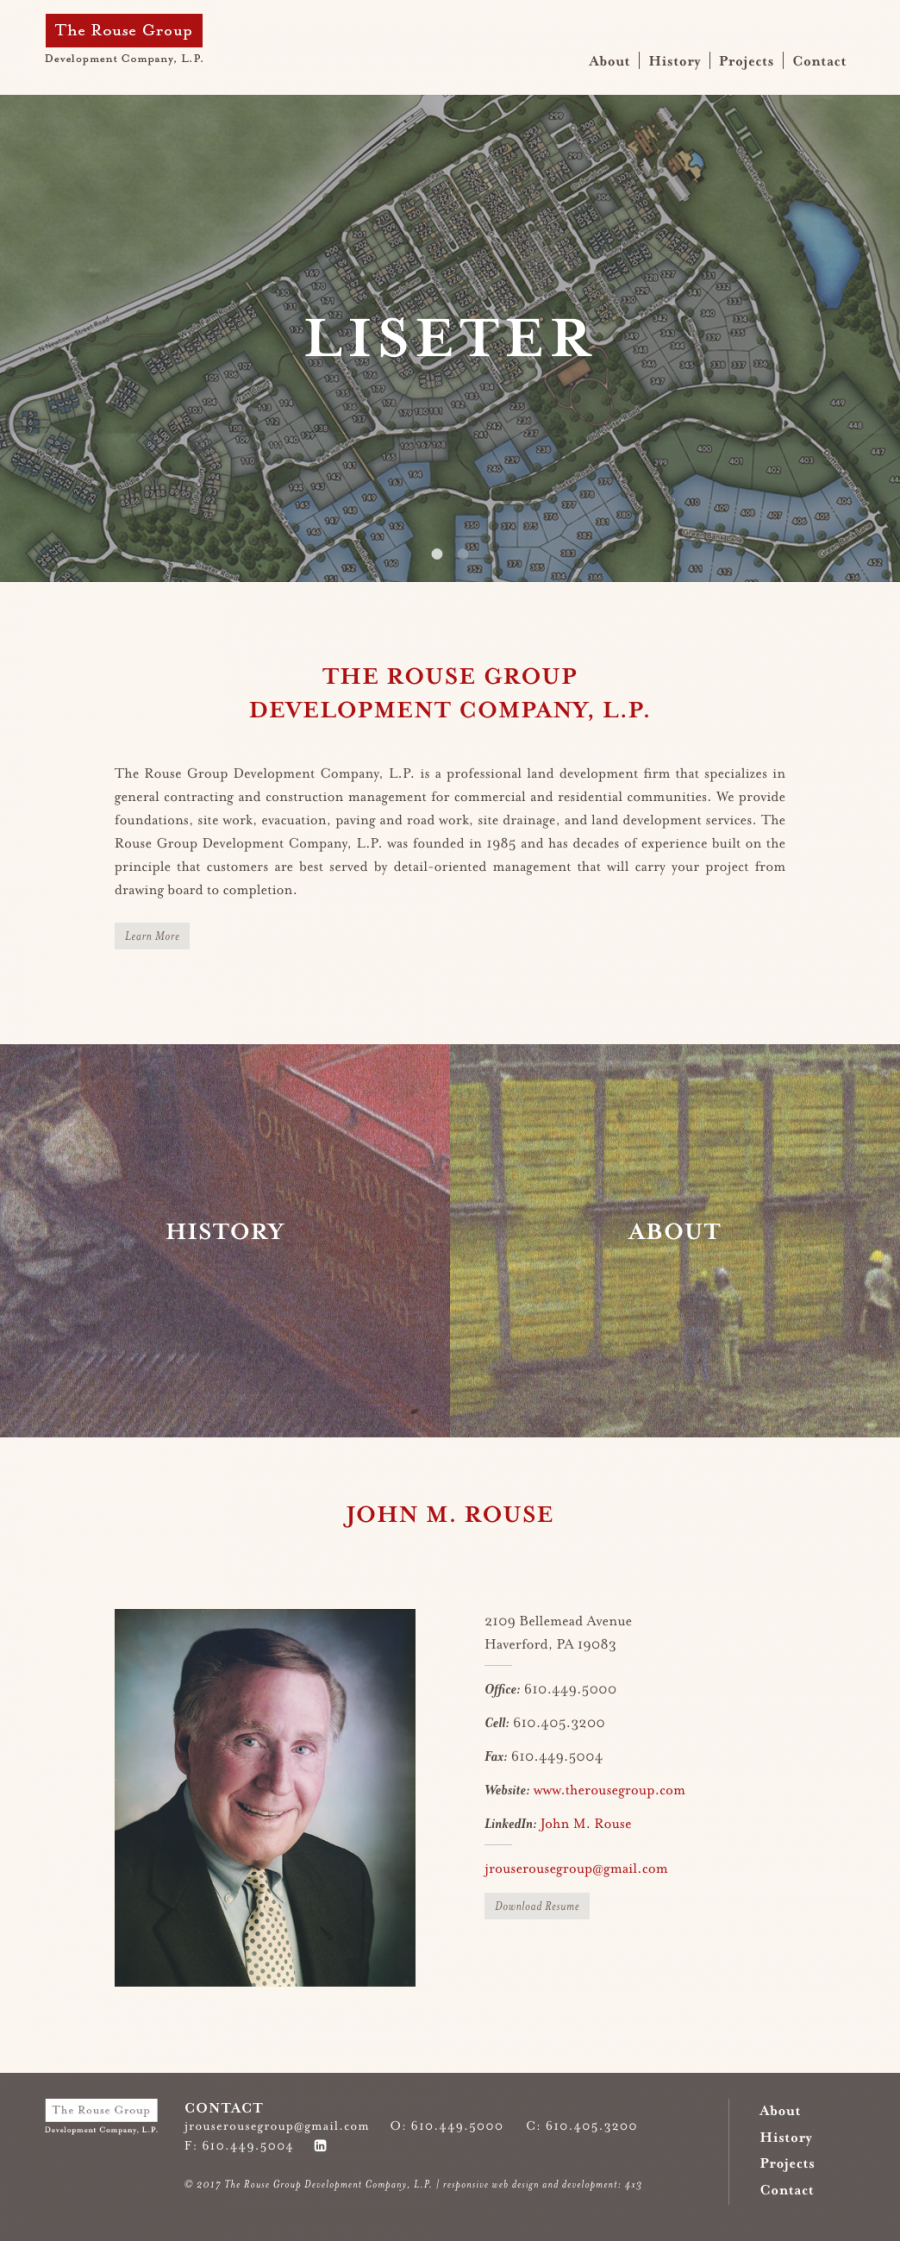 The Rouse Group Homepage, featuring company History and Projects